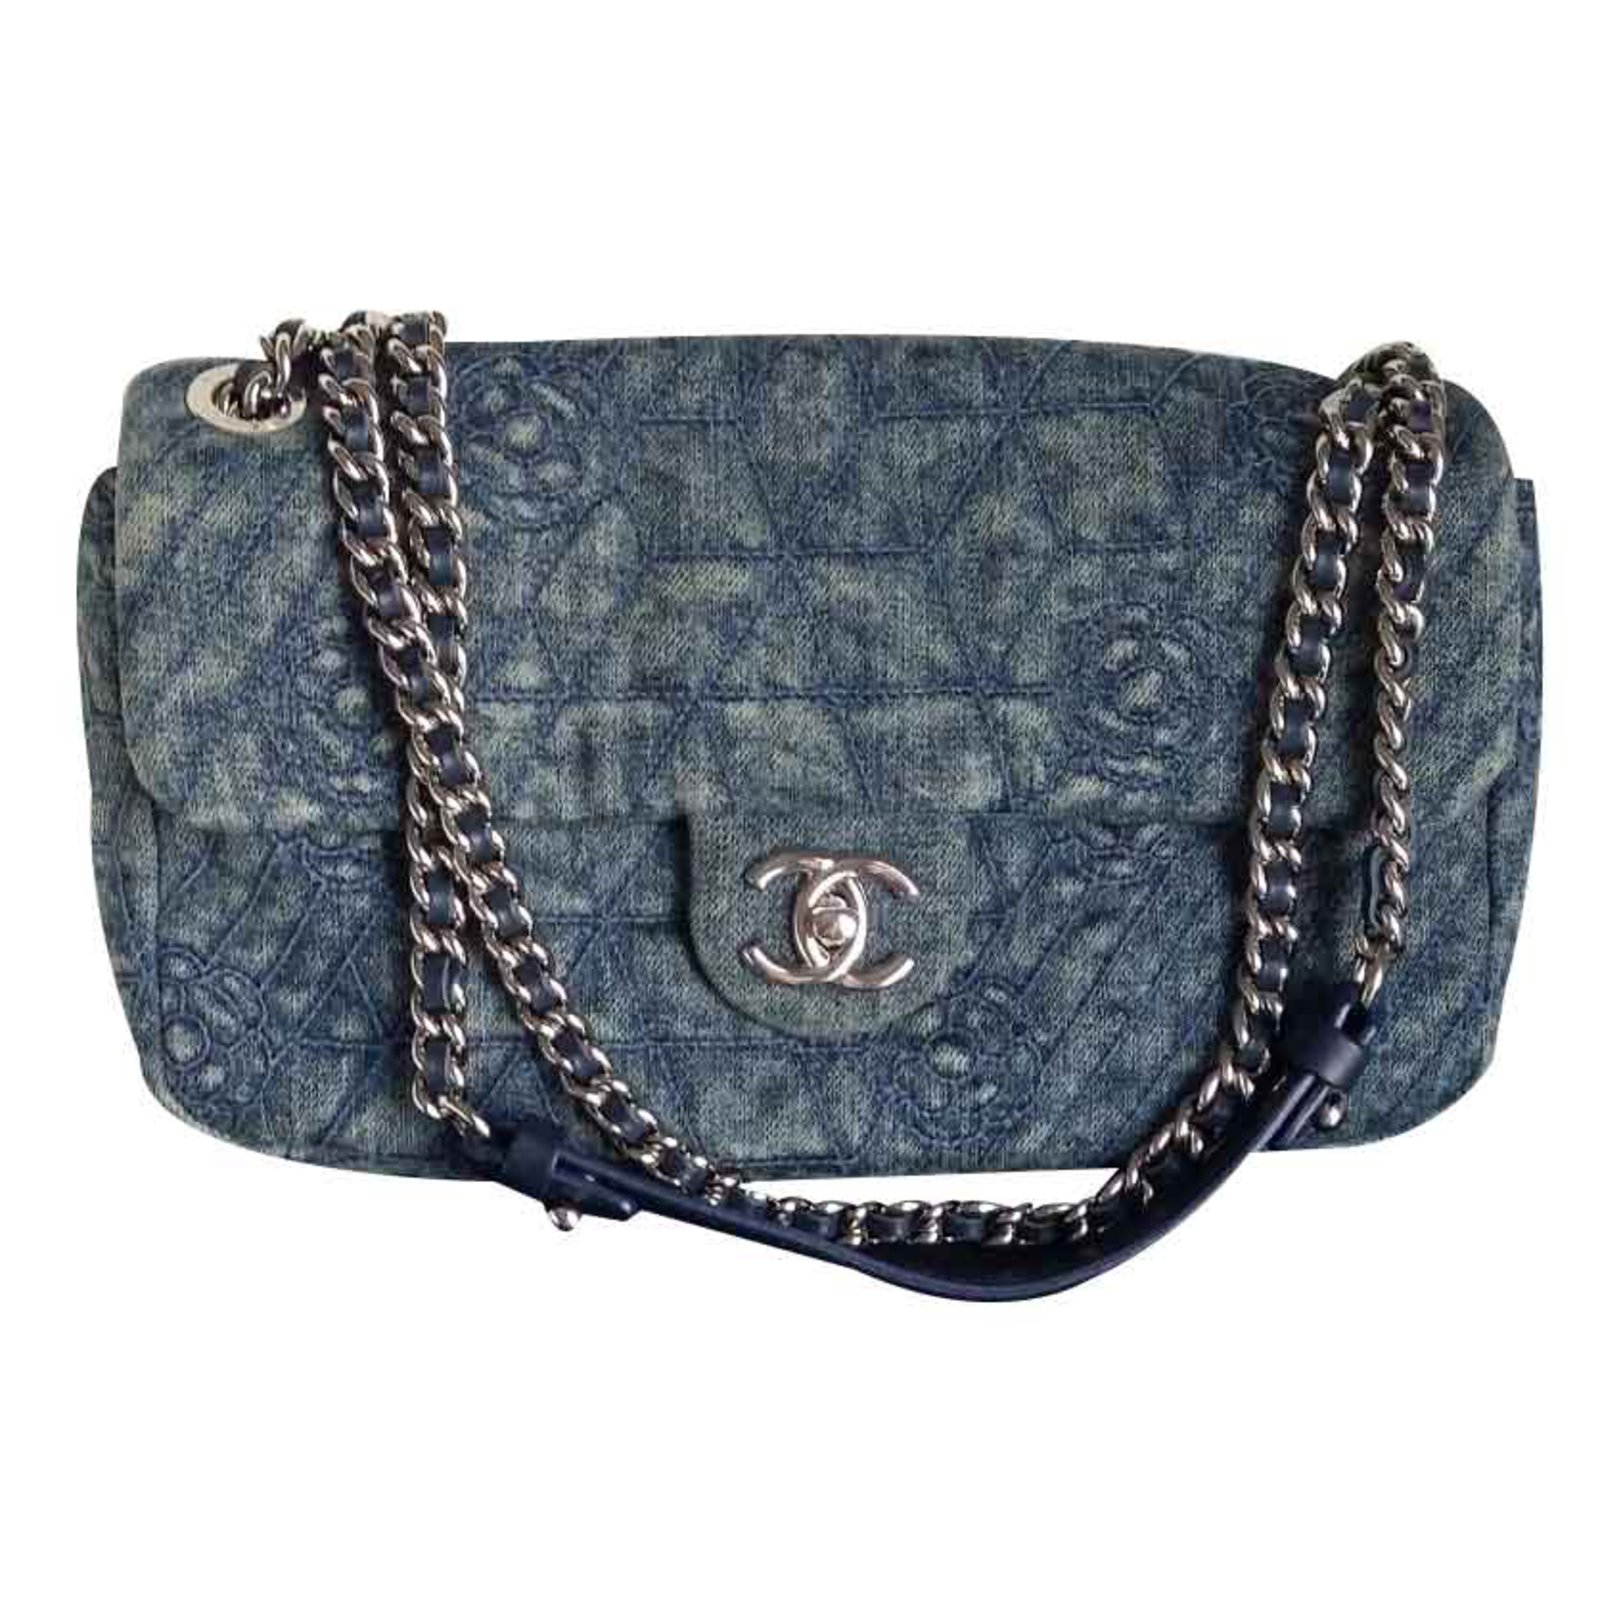 Chanel Bag Handbags Denim Blue Ref 20796